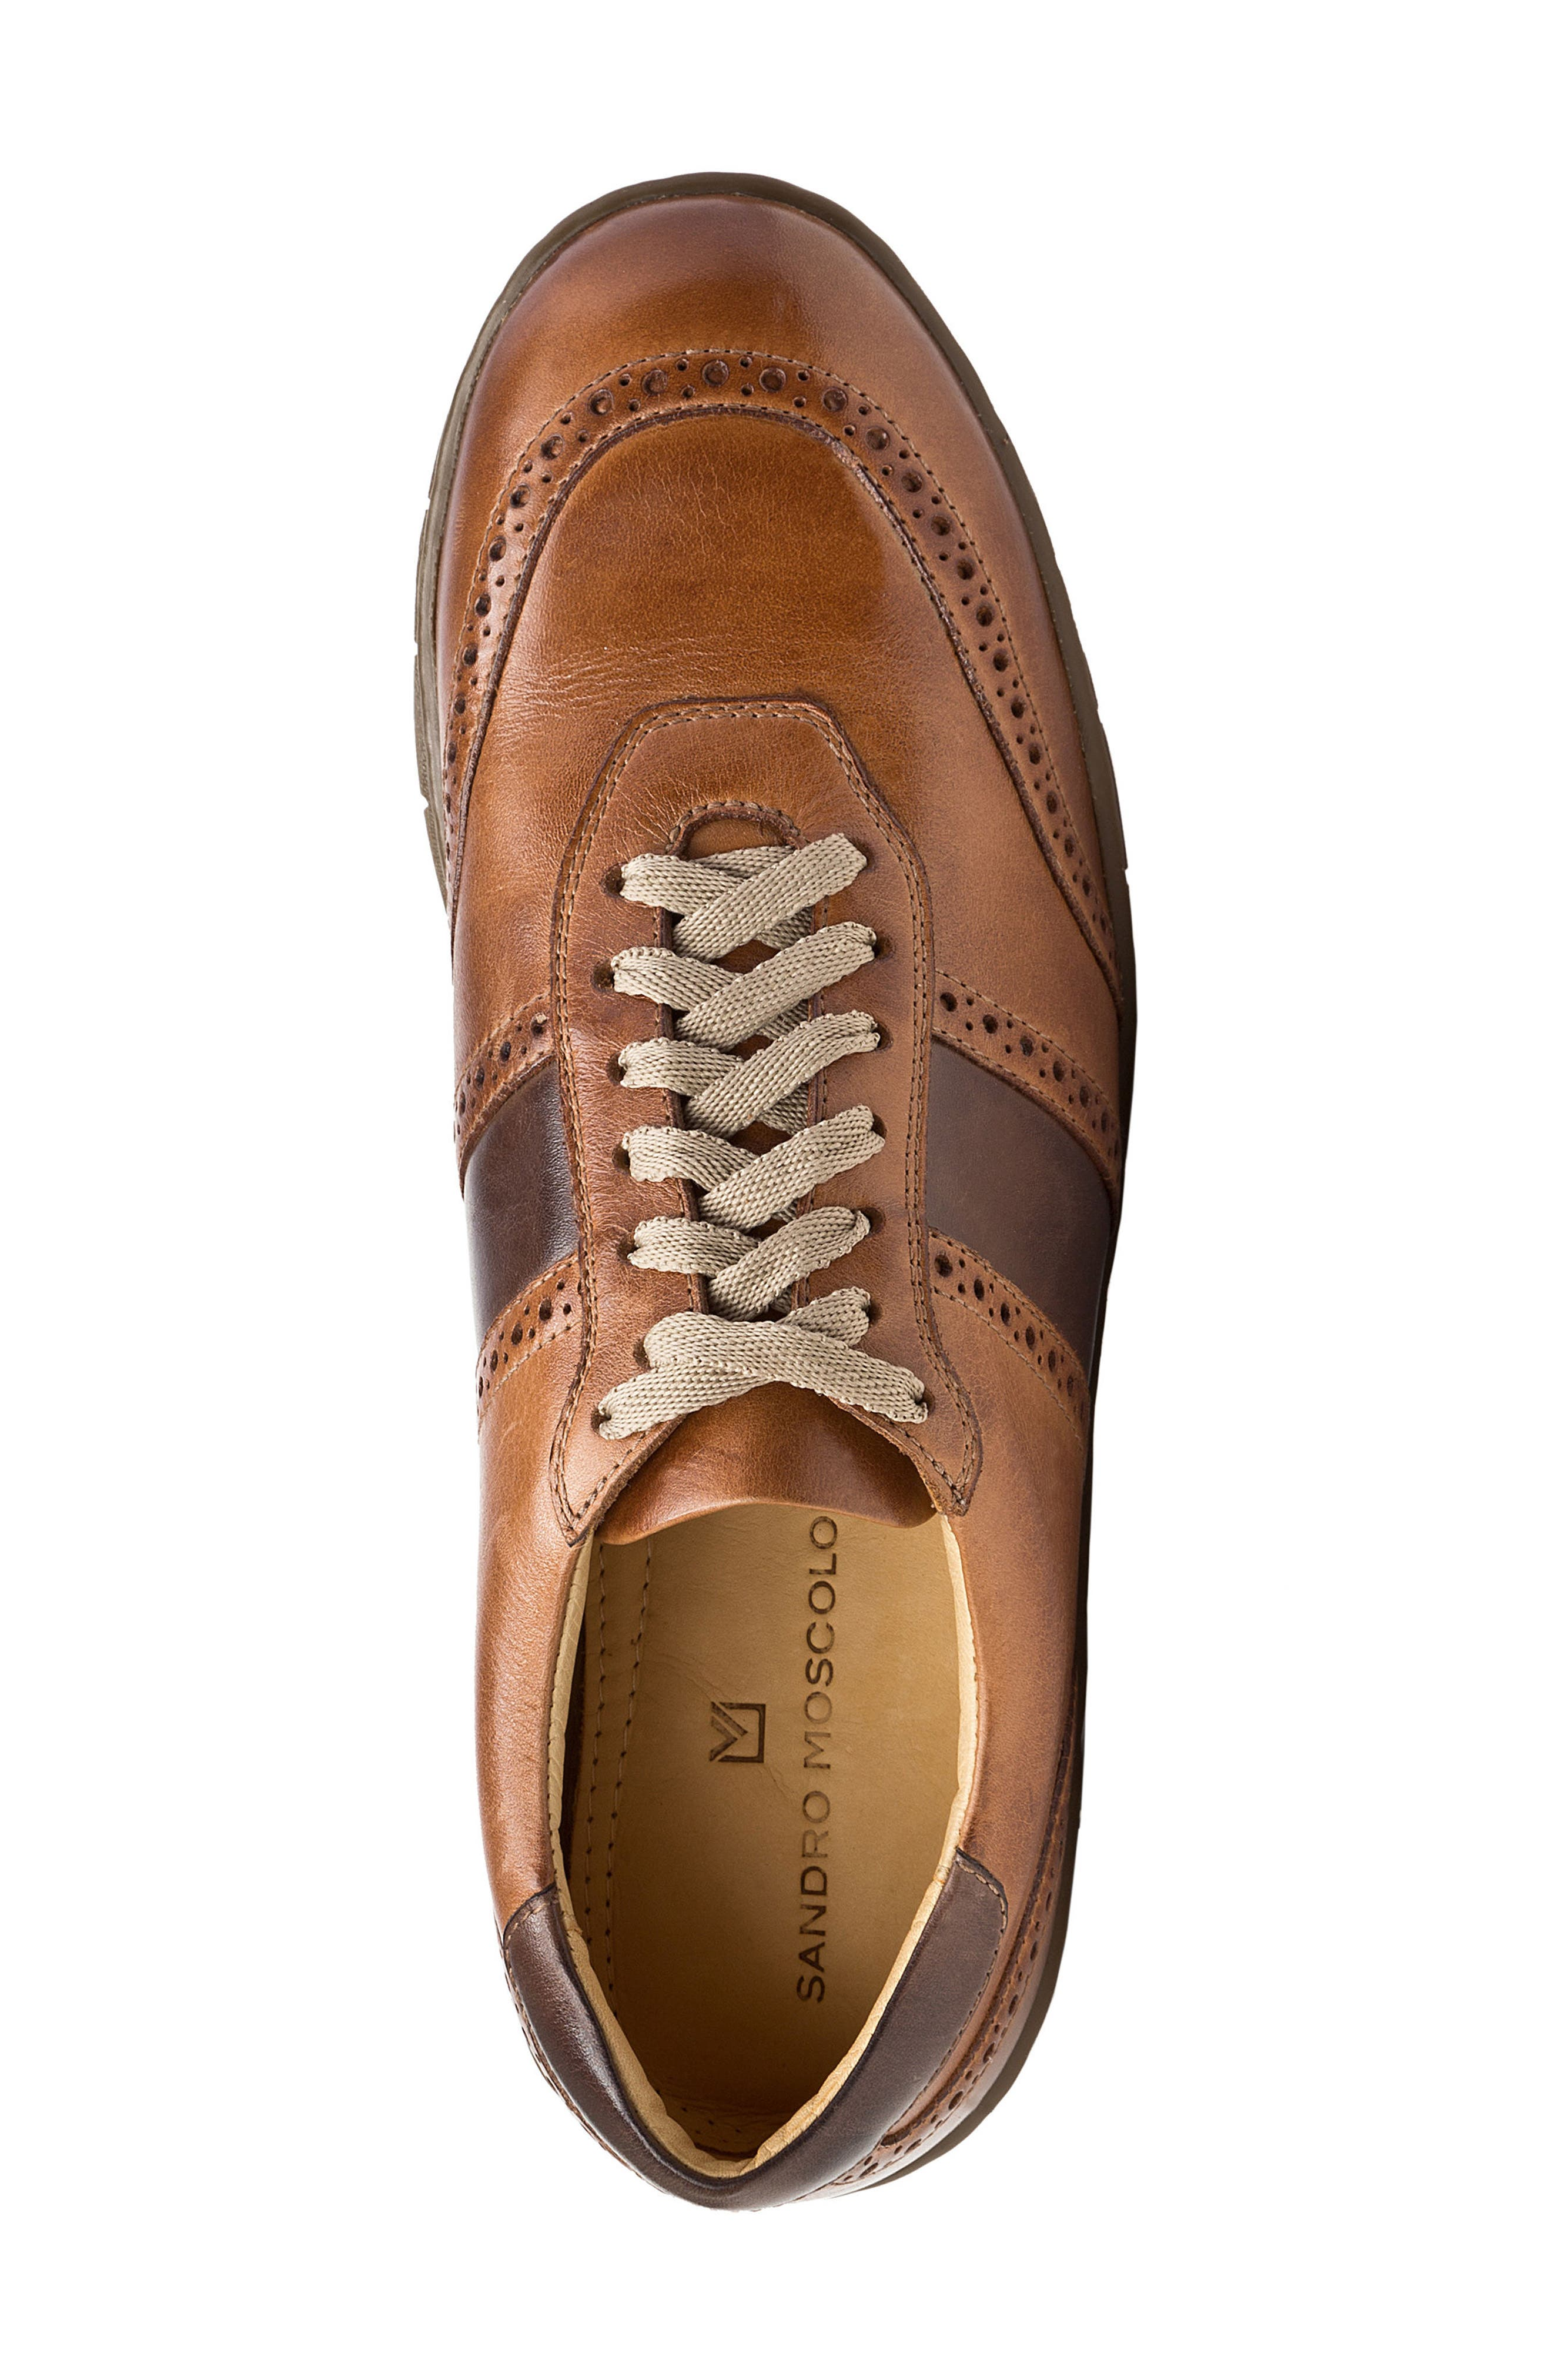 Norris Sneaker,                             Alternate thumbnail 5, color,                             Tan Leather